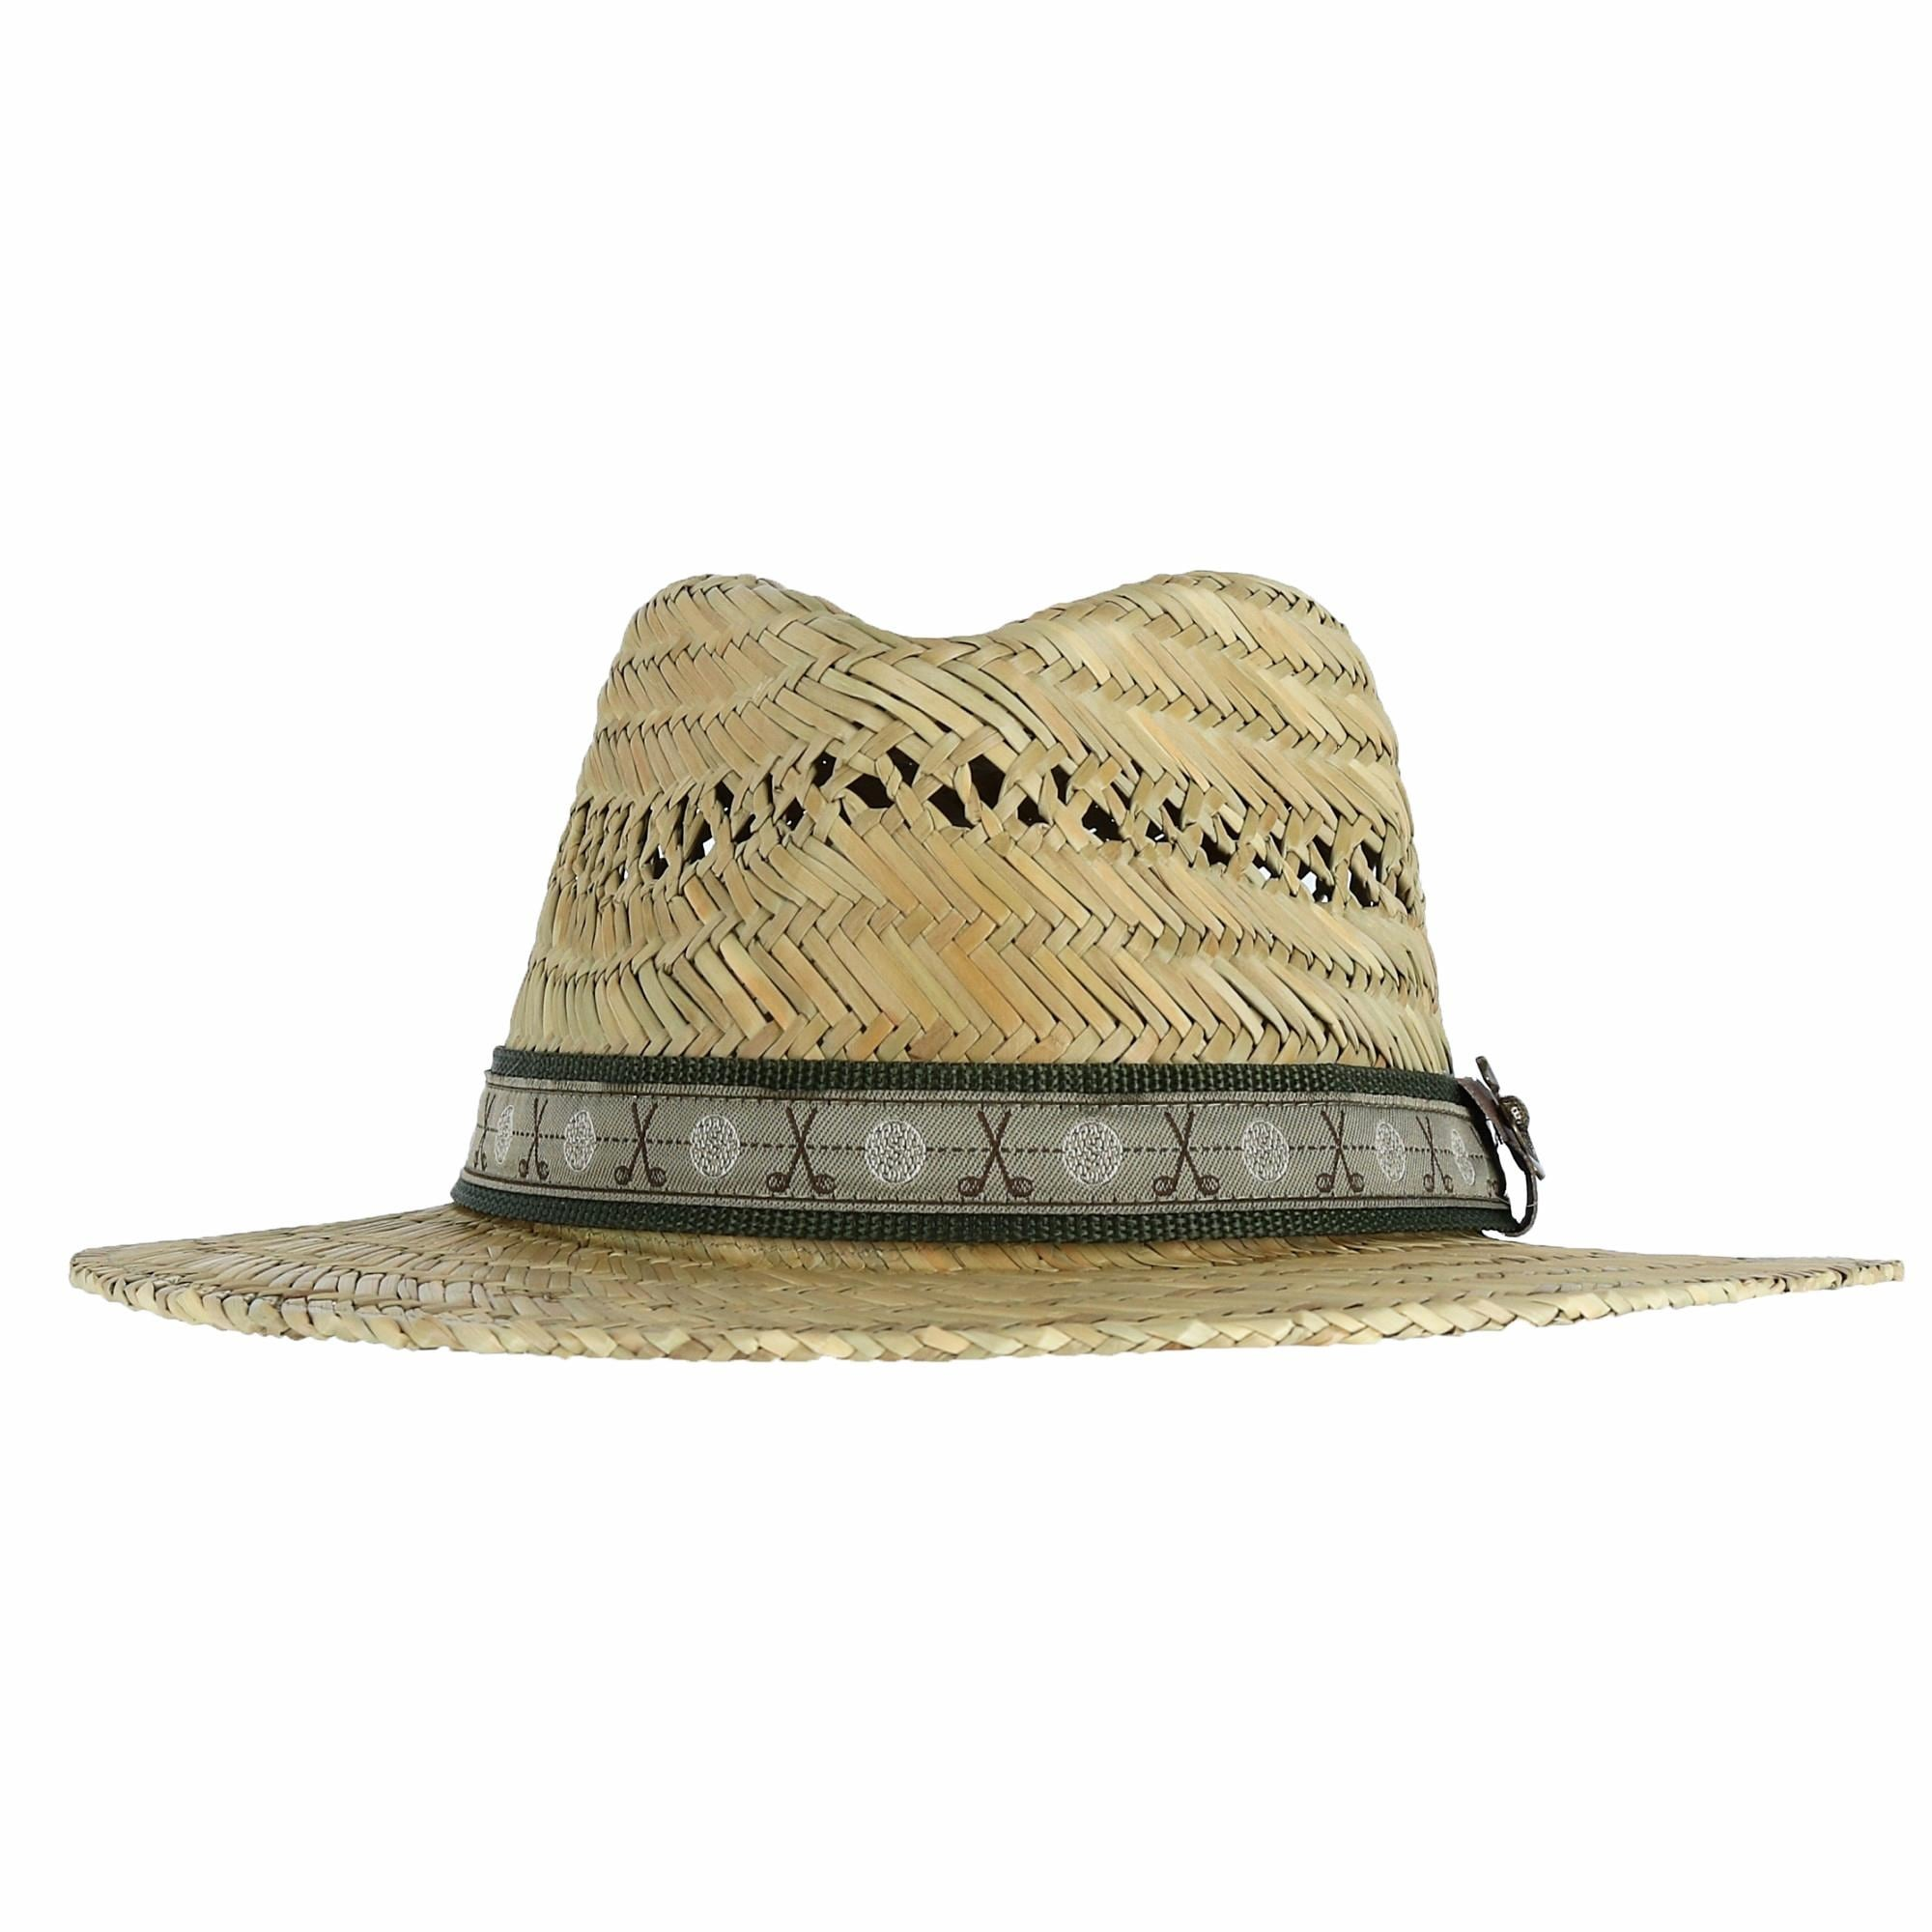 db8a2ae76fb Scala Classico Men s Rush Straw Safari Hat with Golf Club Pin and Hatband